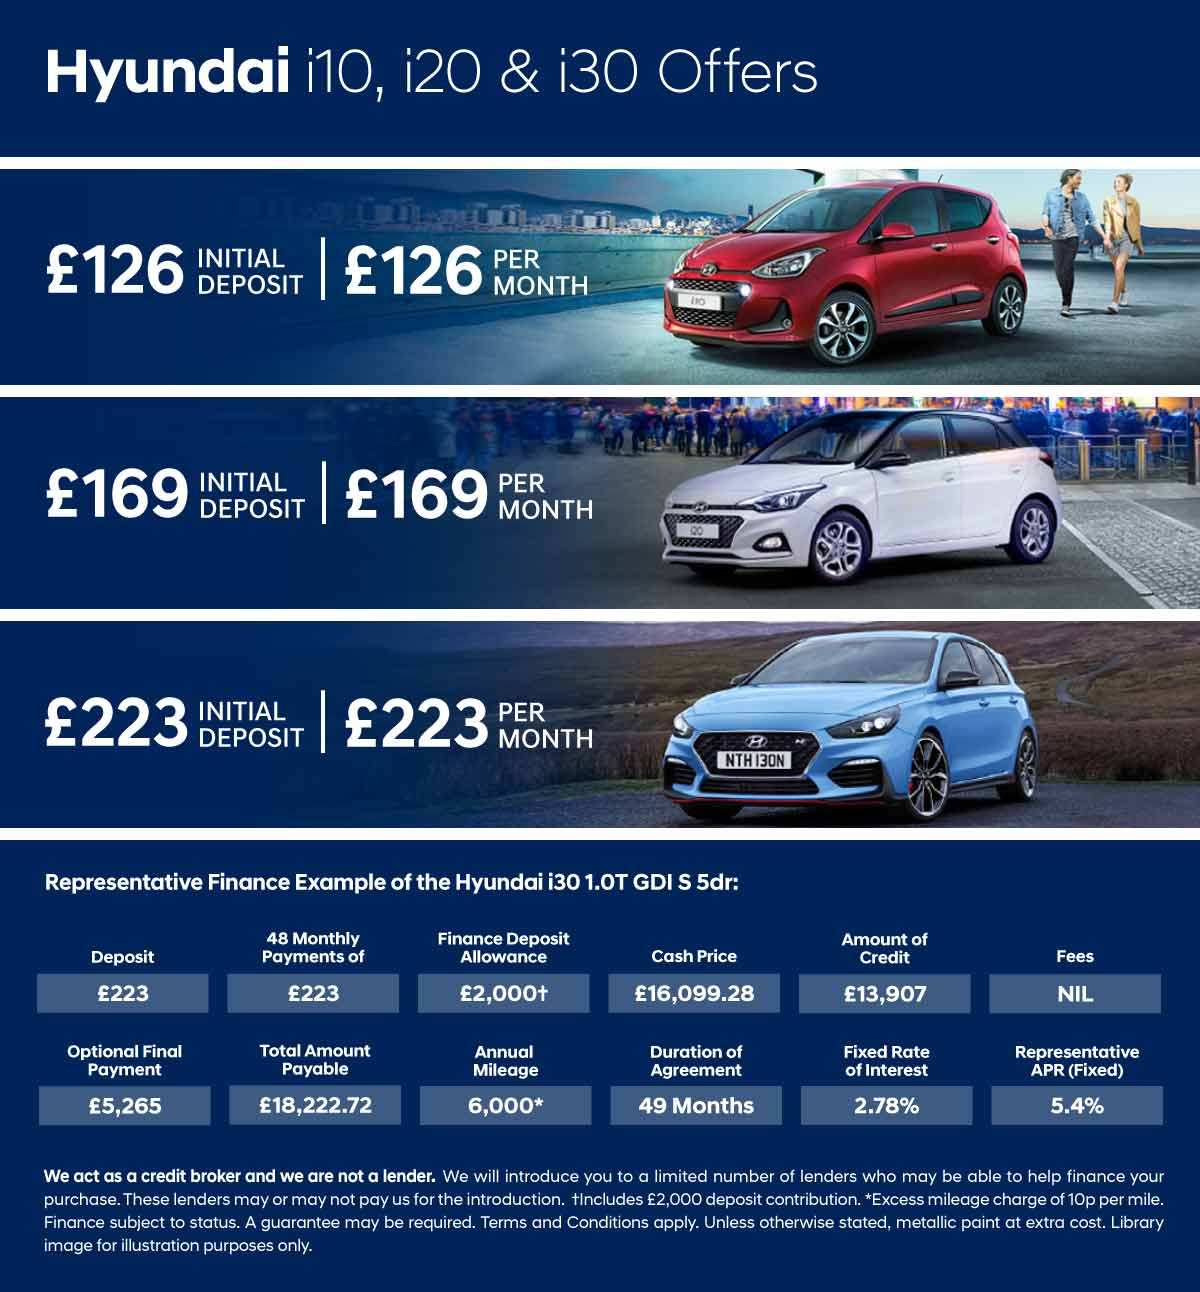 Hyundai Triple Offer